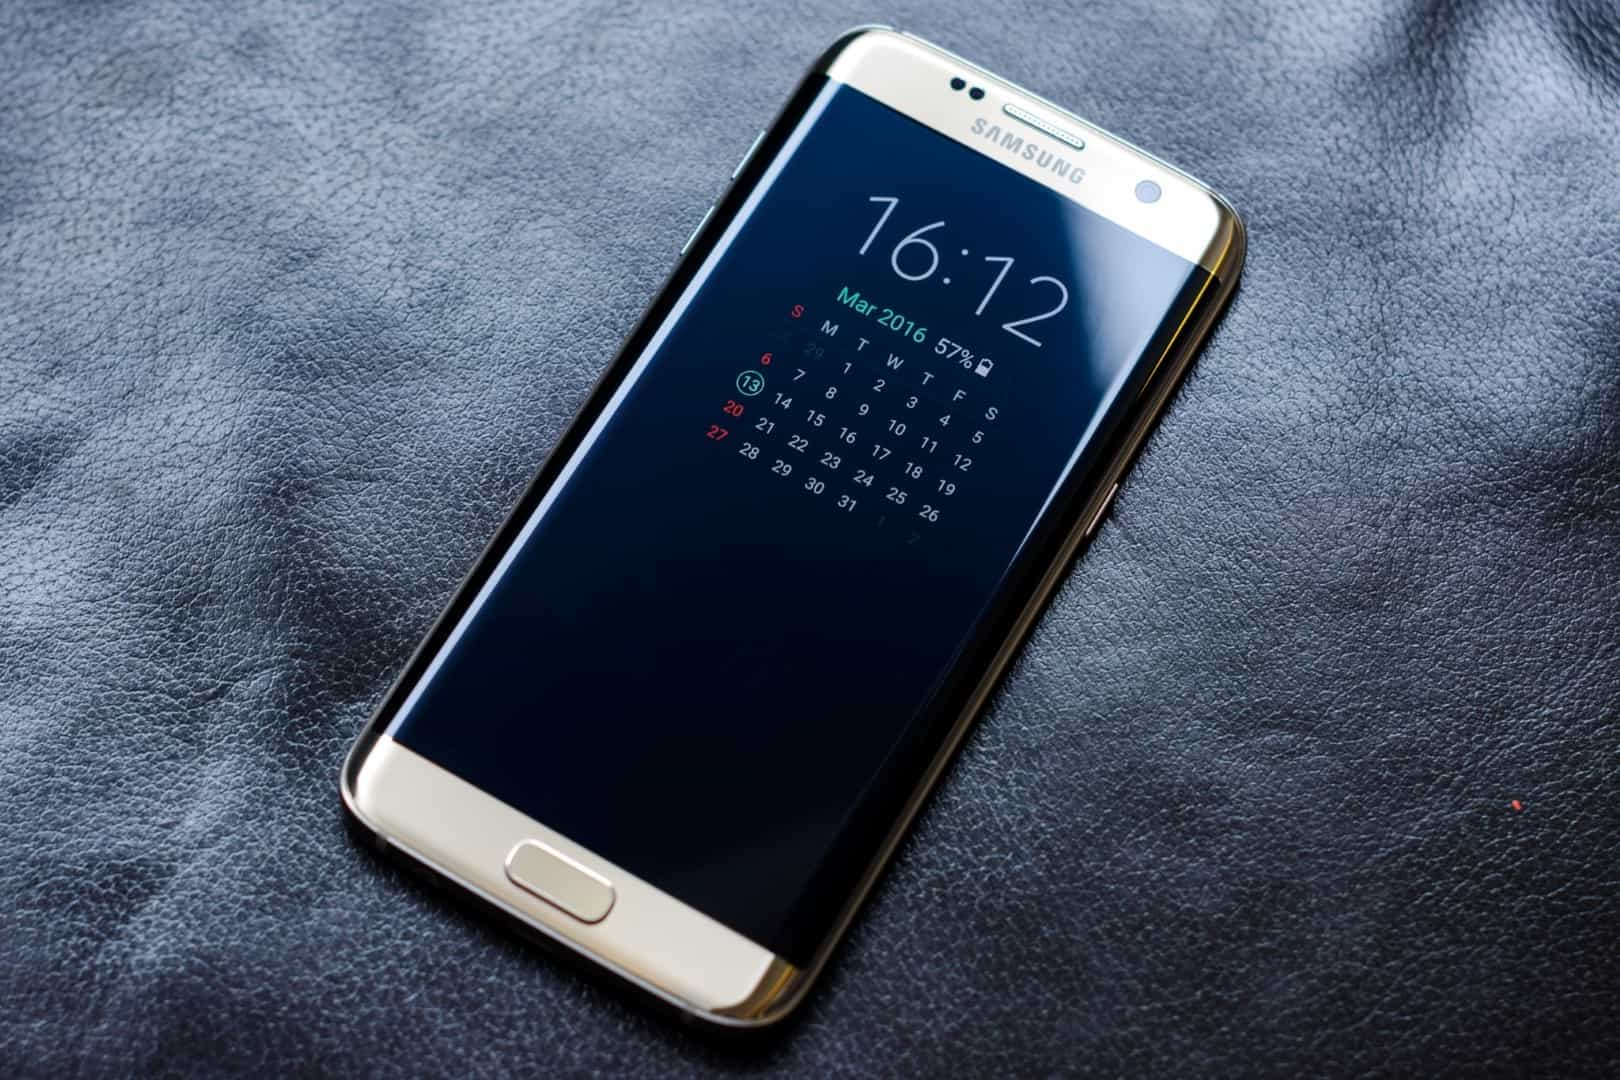 Can't unlock Samsung Galaxy S9 password or pin - TheCellGuide